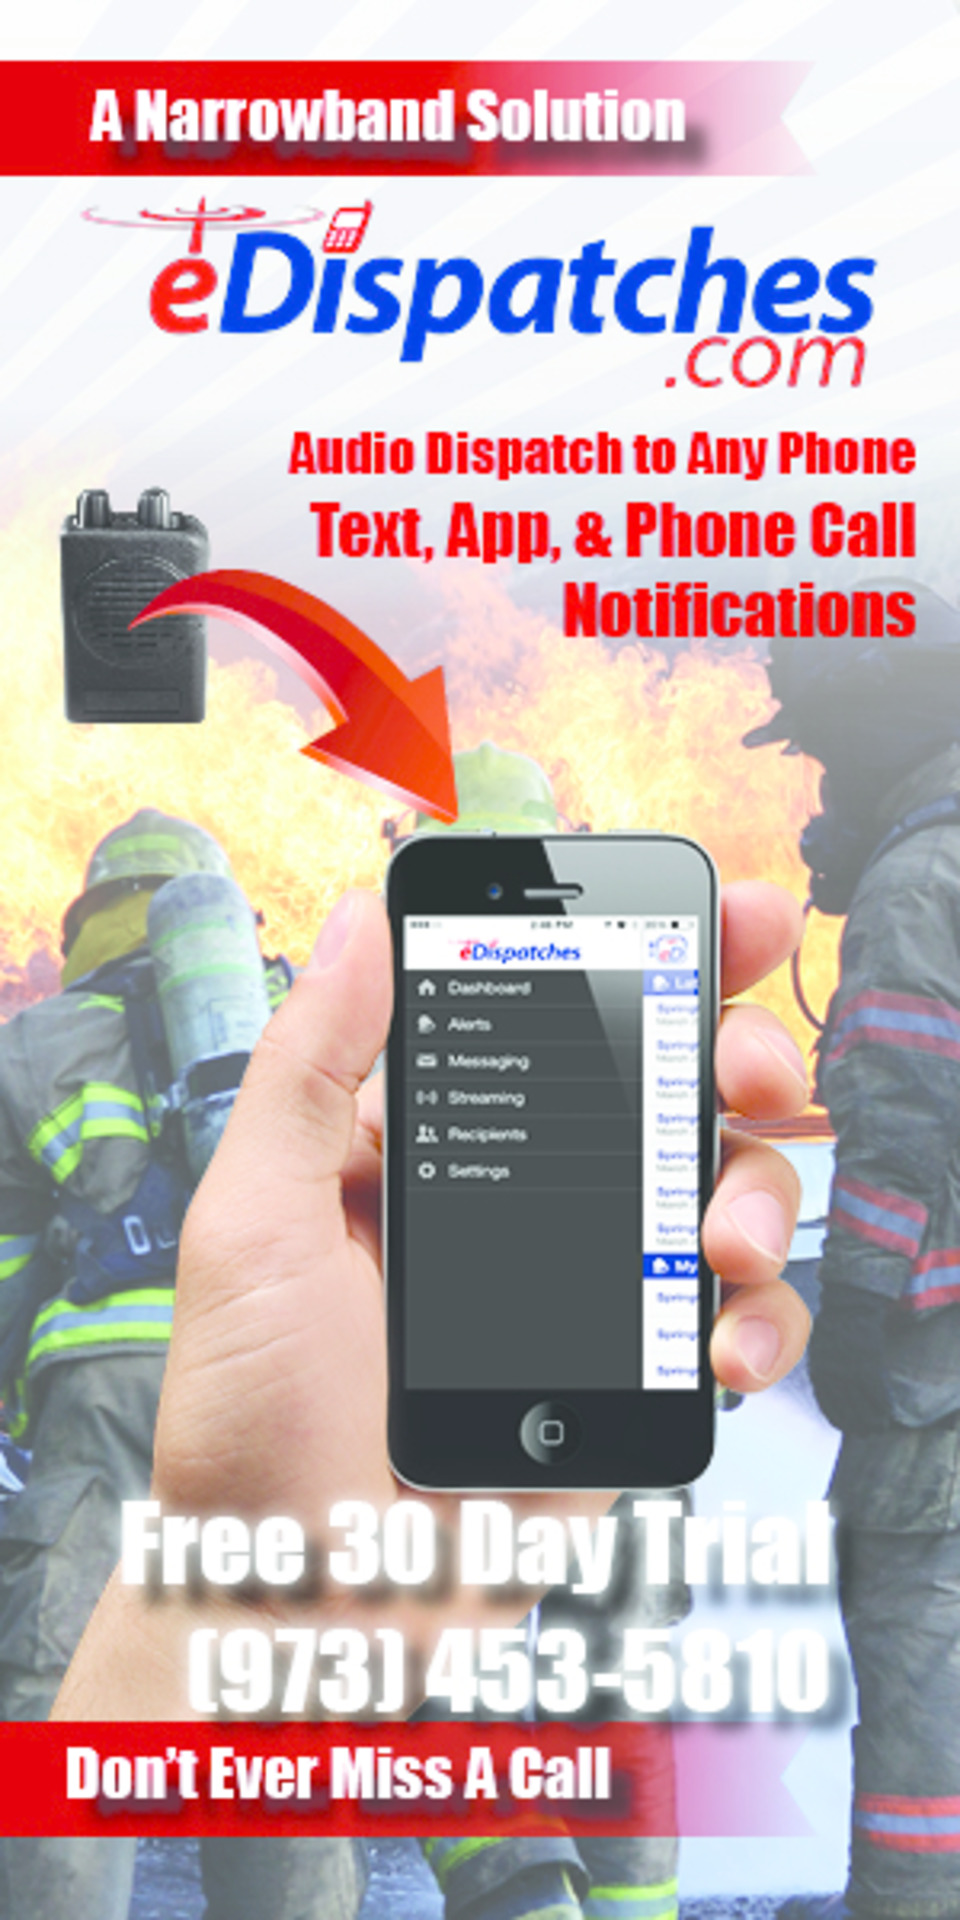 eDispatches - Firefighter Audio and Text Dispatching